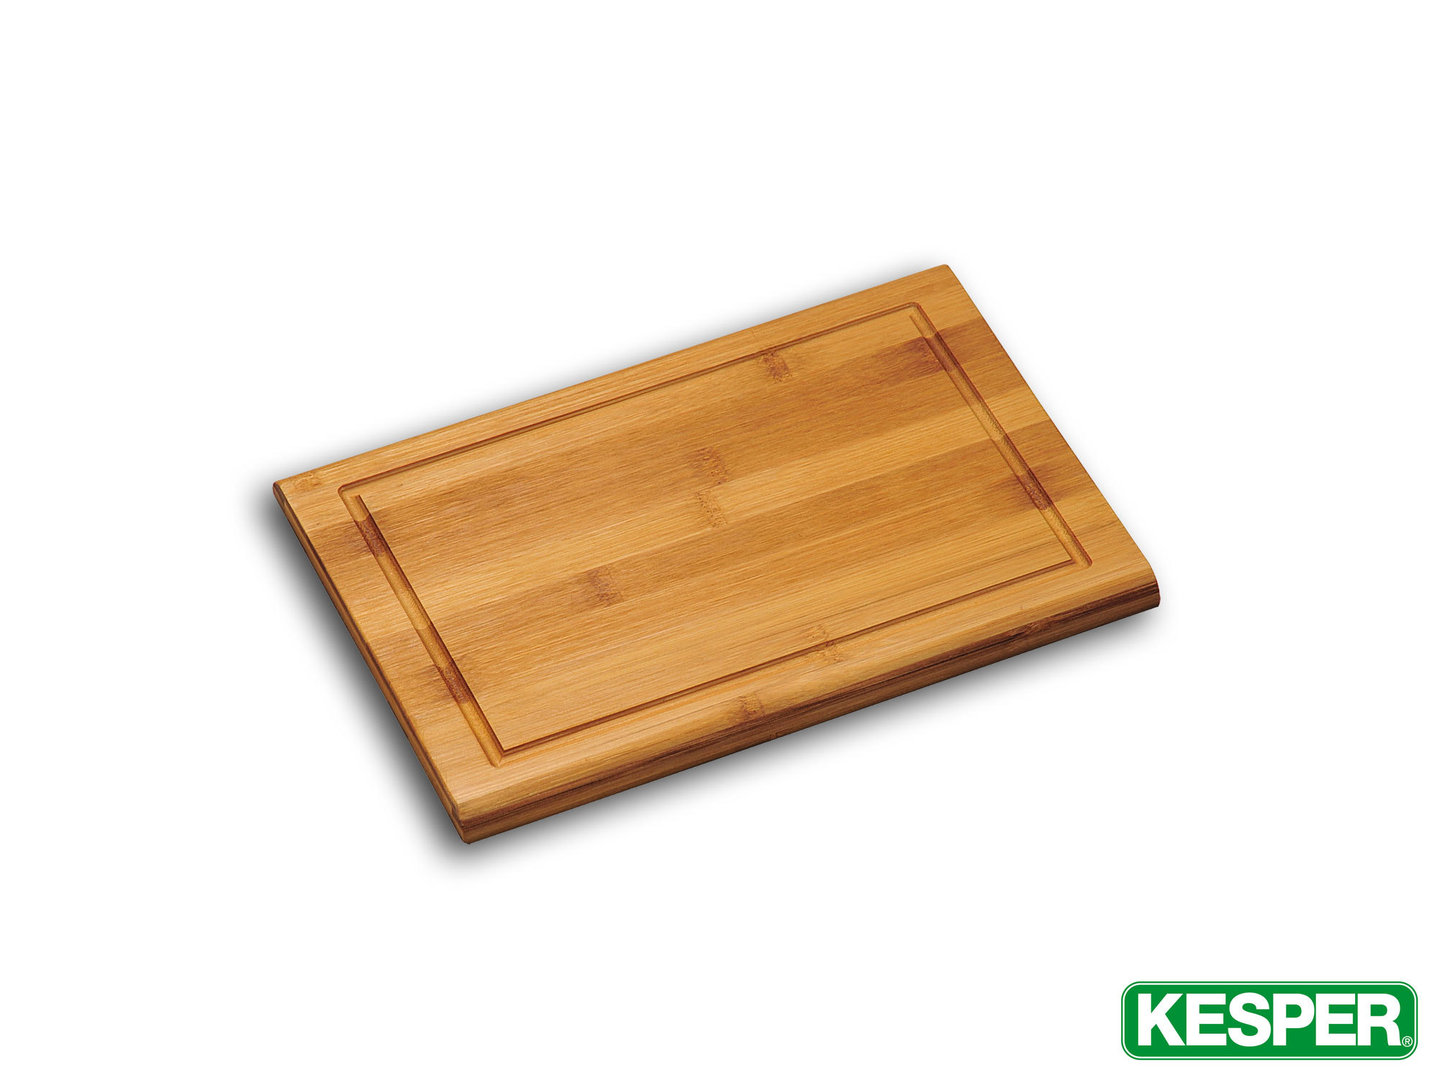 KESPER bamboo cutting board 31 x 21 x 1,6 cm with juice rim